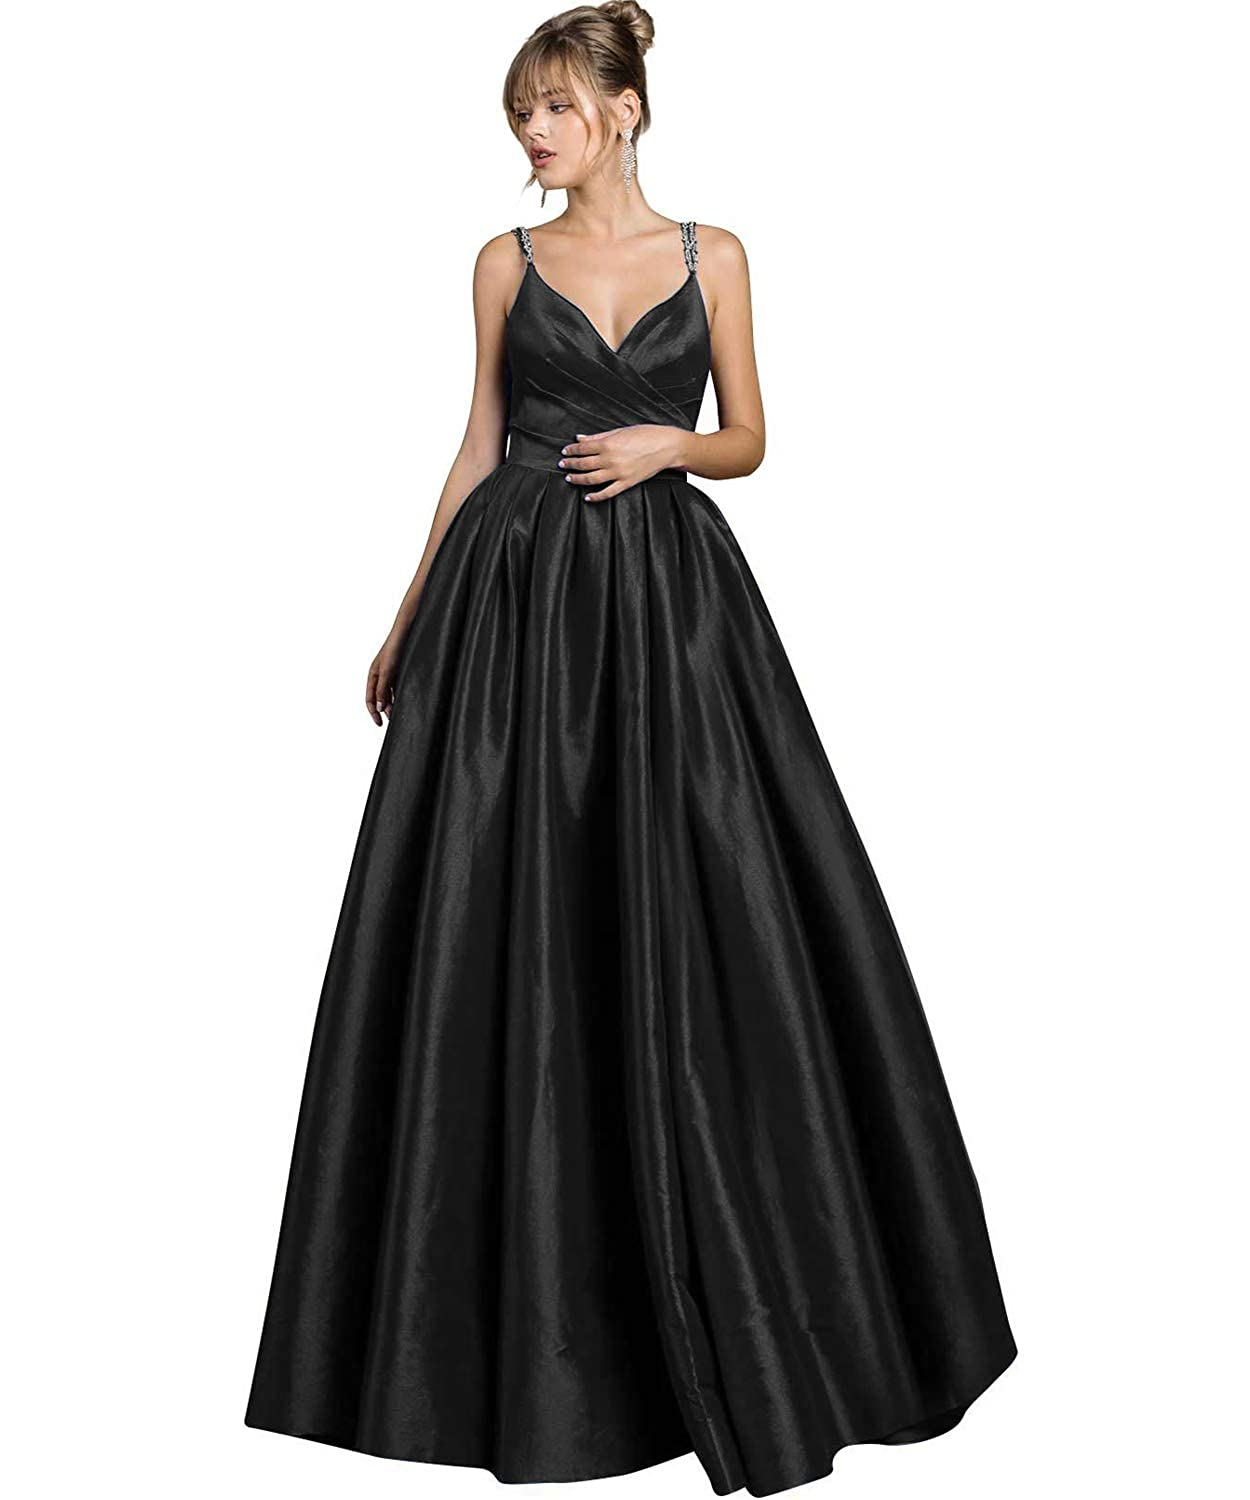 Black Yilis Women's Beaded Spaghetti Straps V Neck Satin Aline Evening Prom Dress Long Formal Gown with Pockets